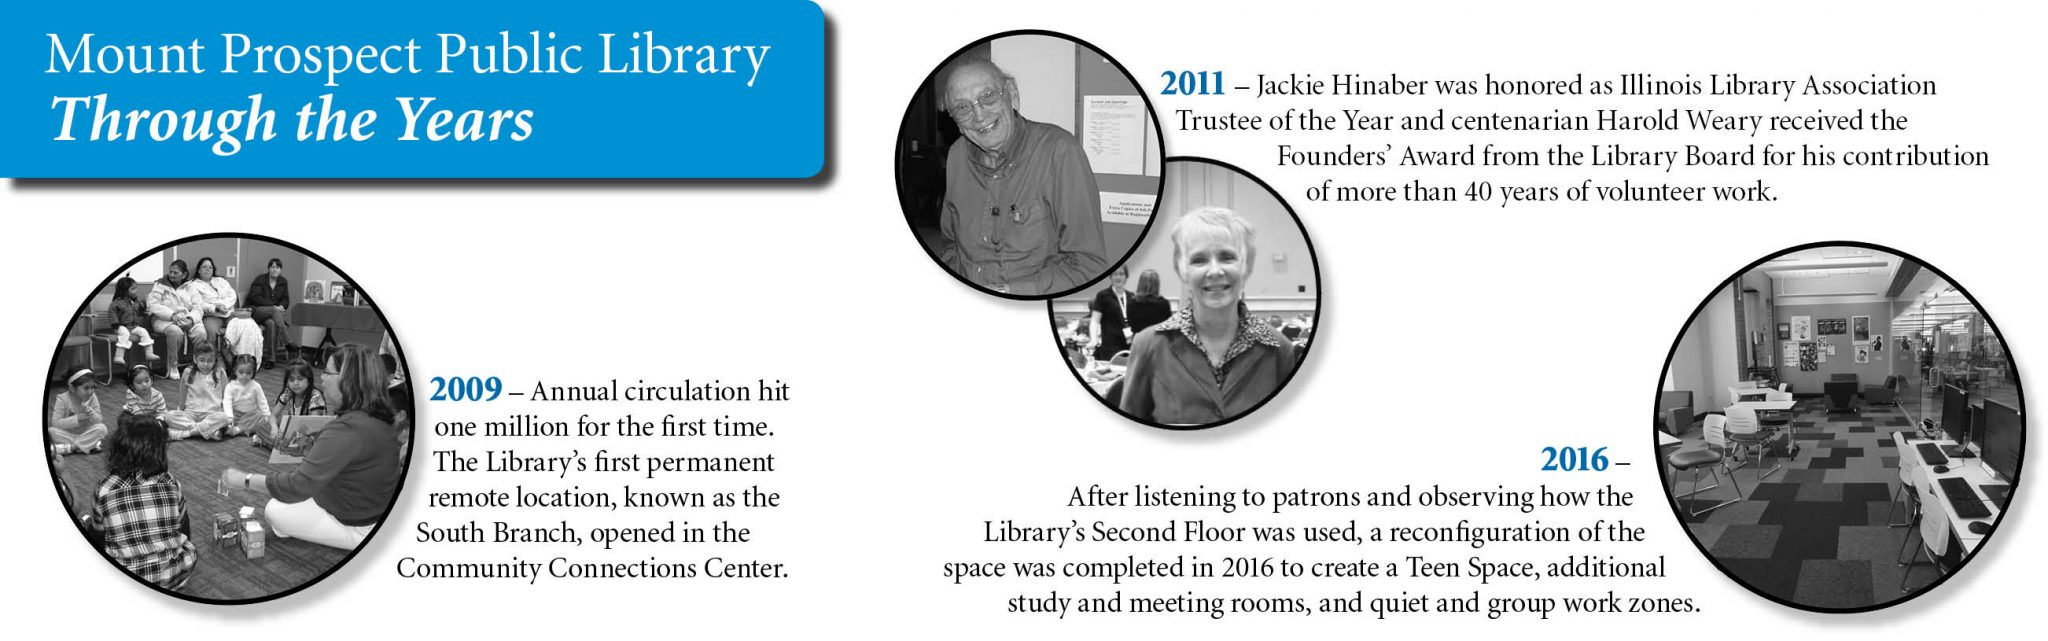 Mount Prospect Public Library through the years (2009, 2011, 2016)